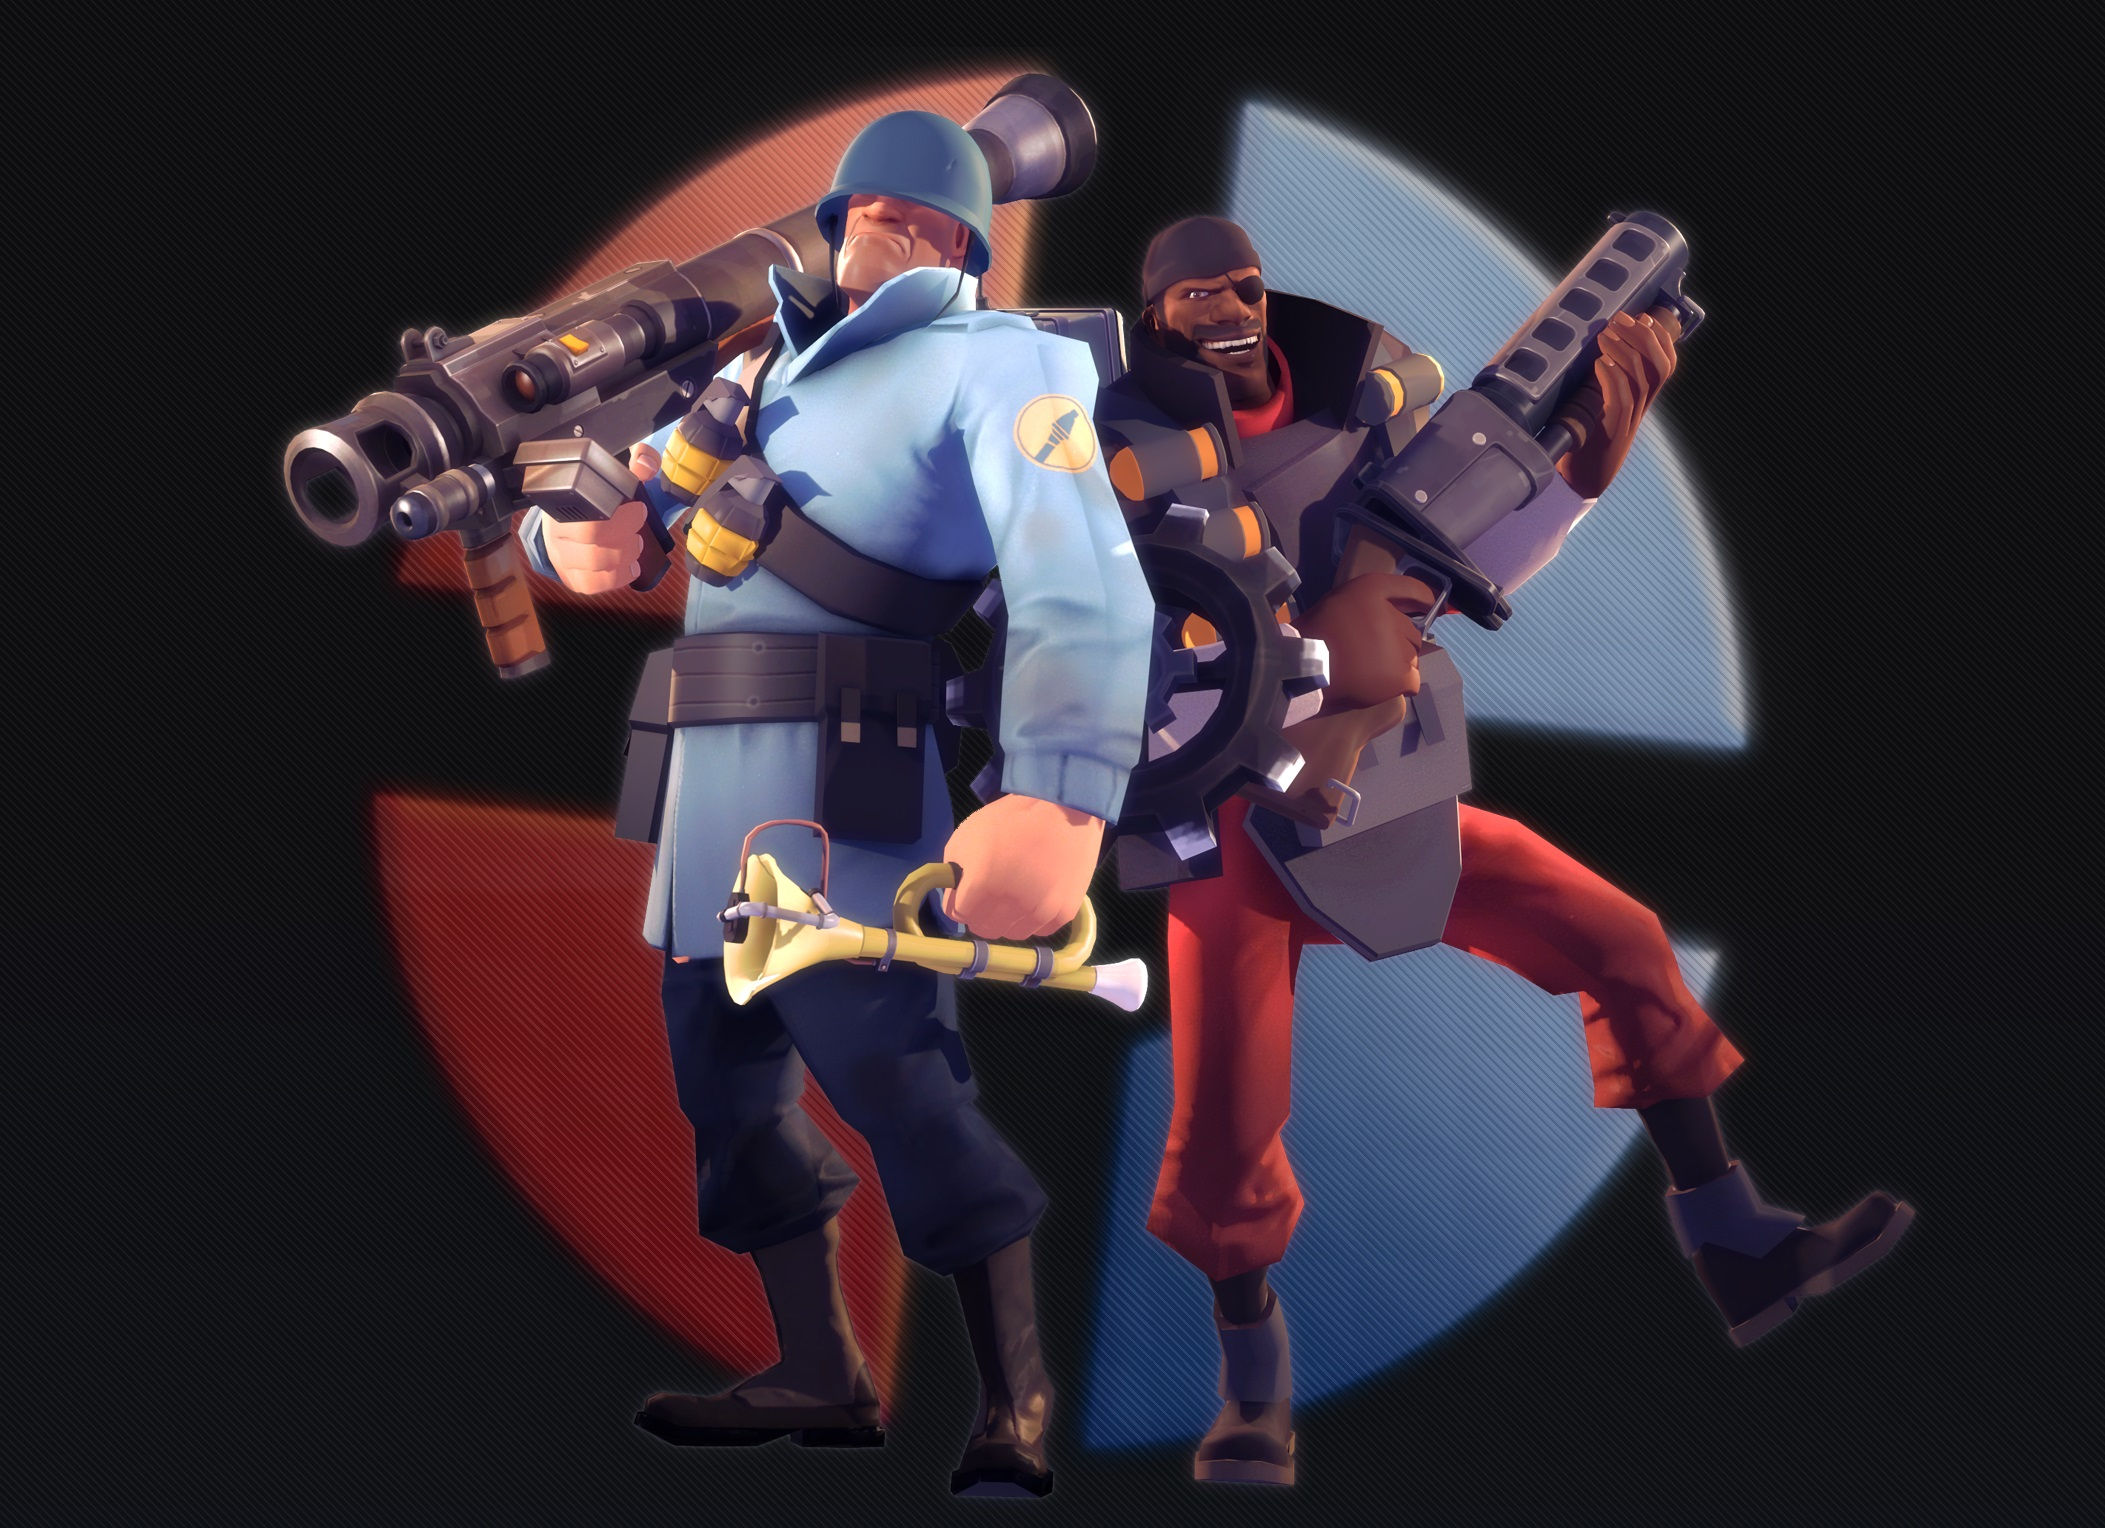 Tf2 sourcemod reserved slots - Egg roulette questions